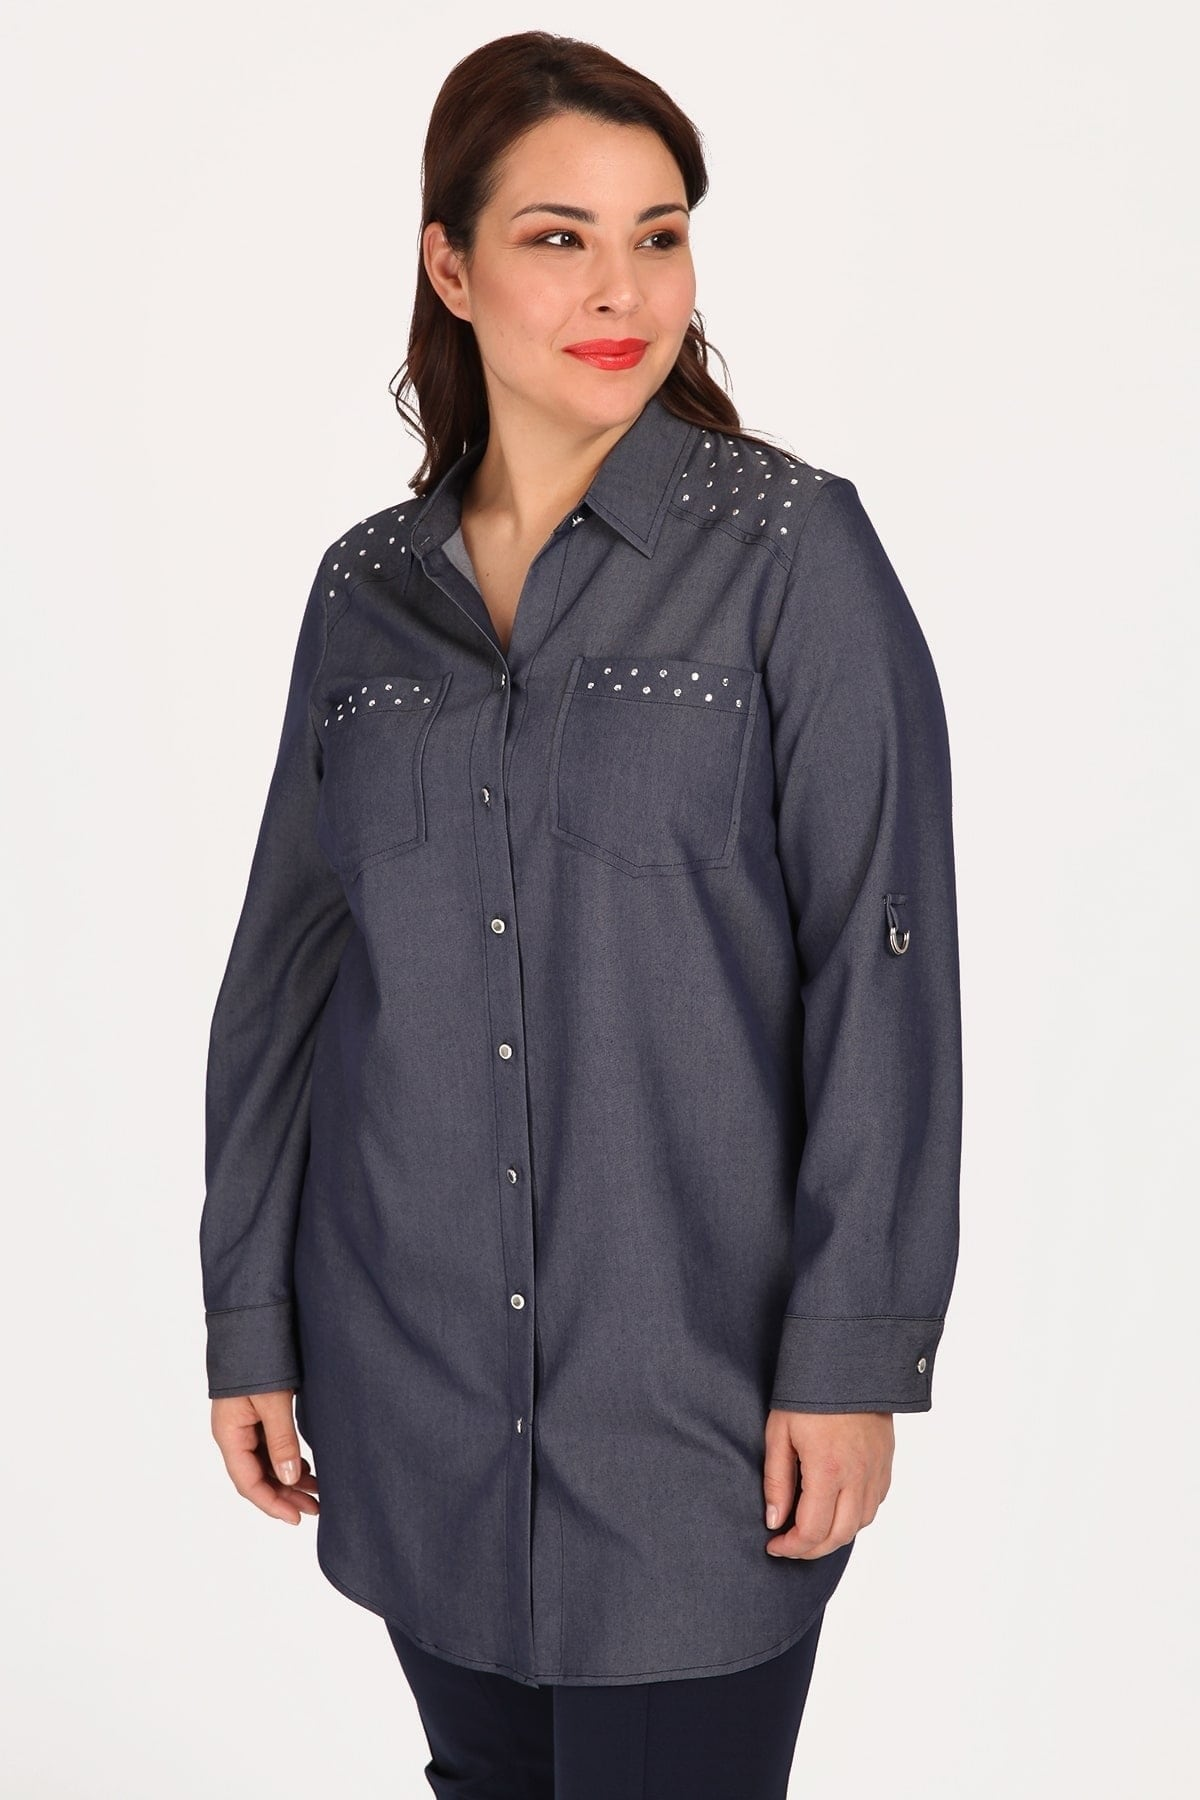 Denim shirt with studs